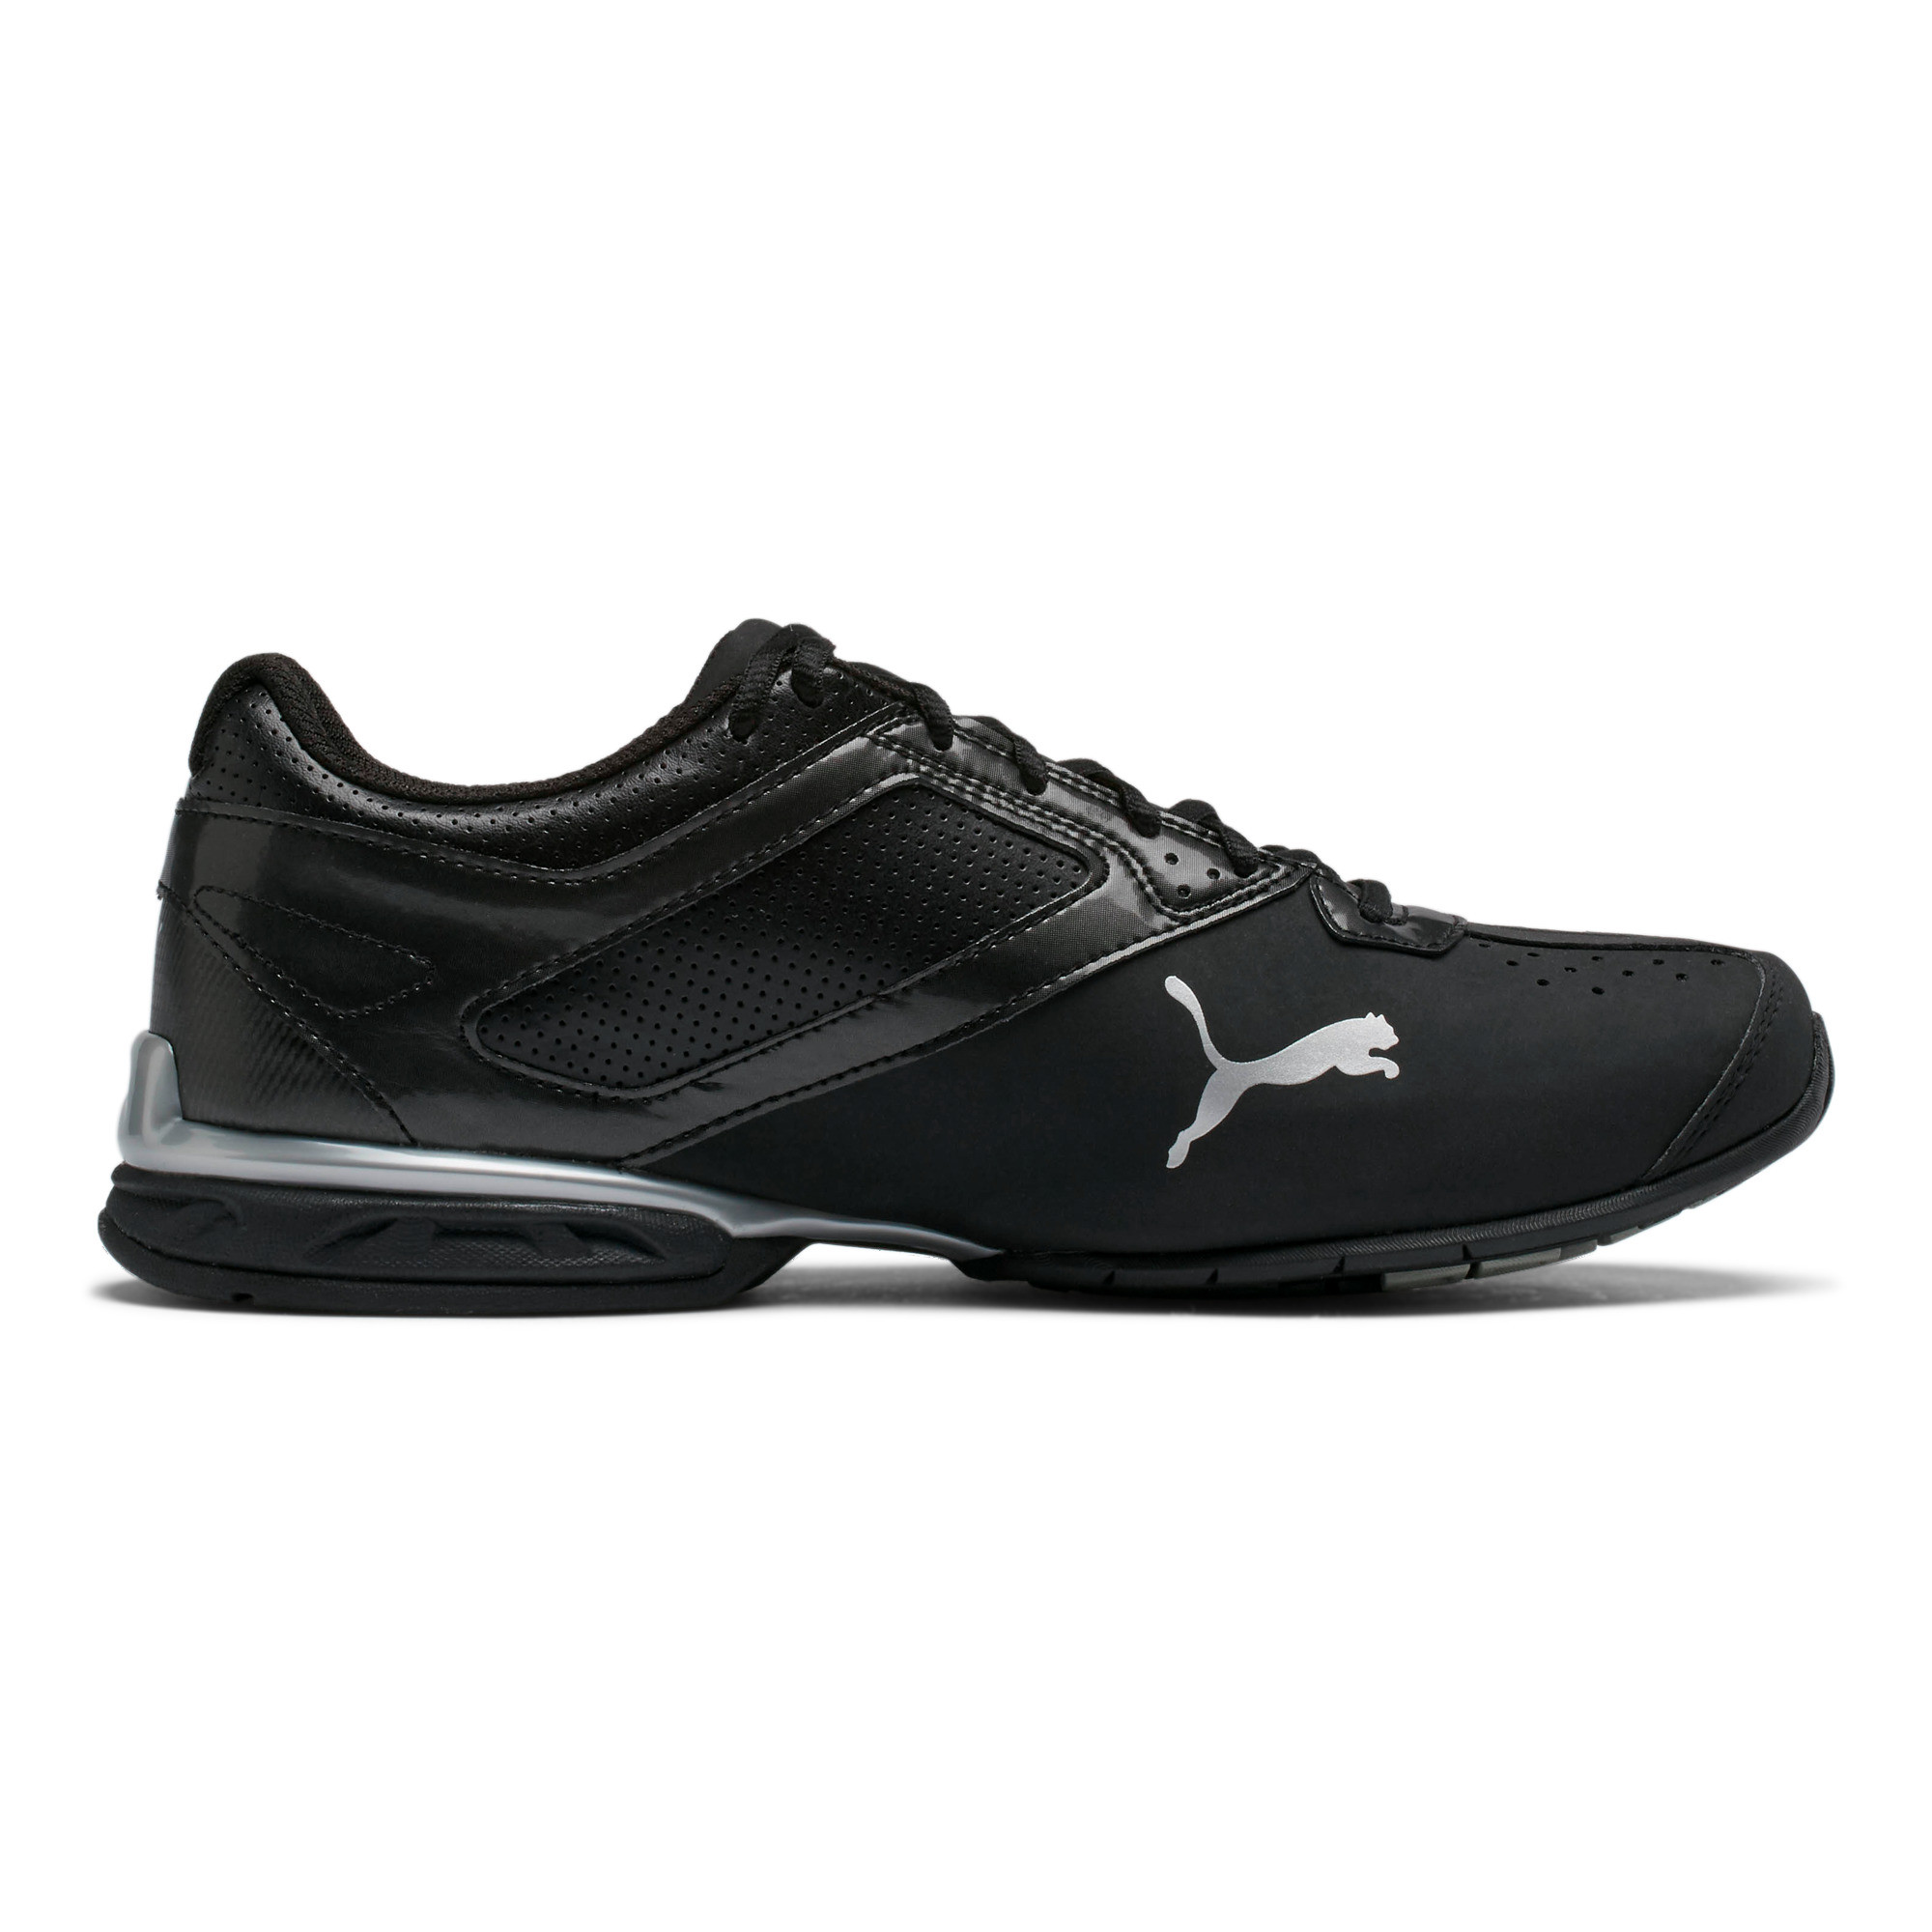 PUMA-Men-039-s-Tazon-6-FM-Sneakers thumbnail 15